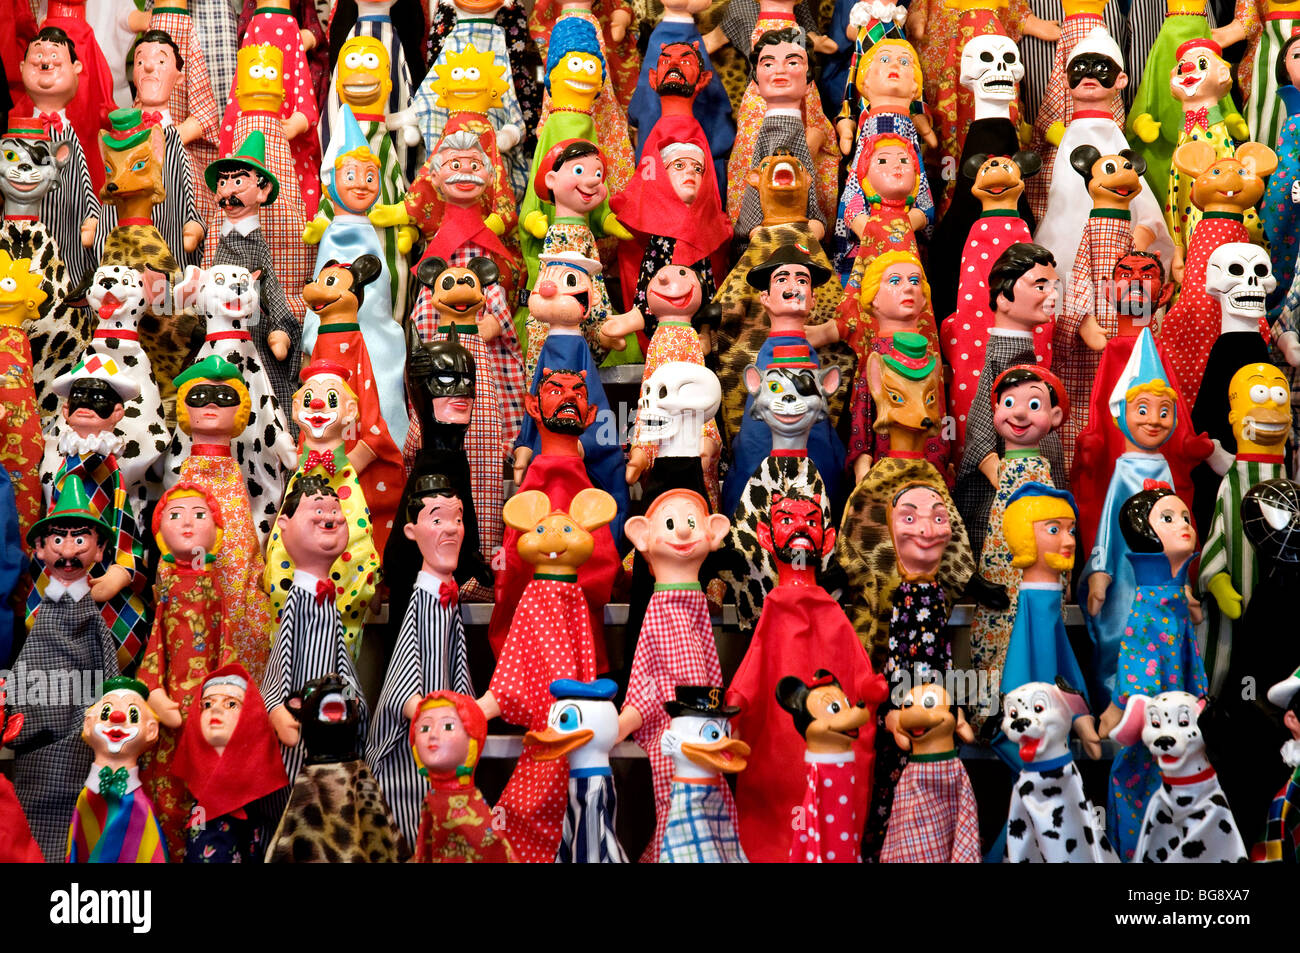 Pattern of simple hand puppets - Stock Image